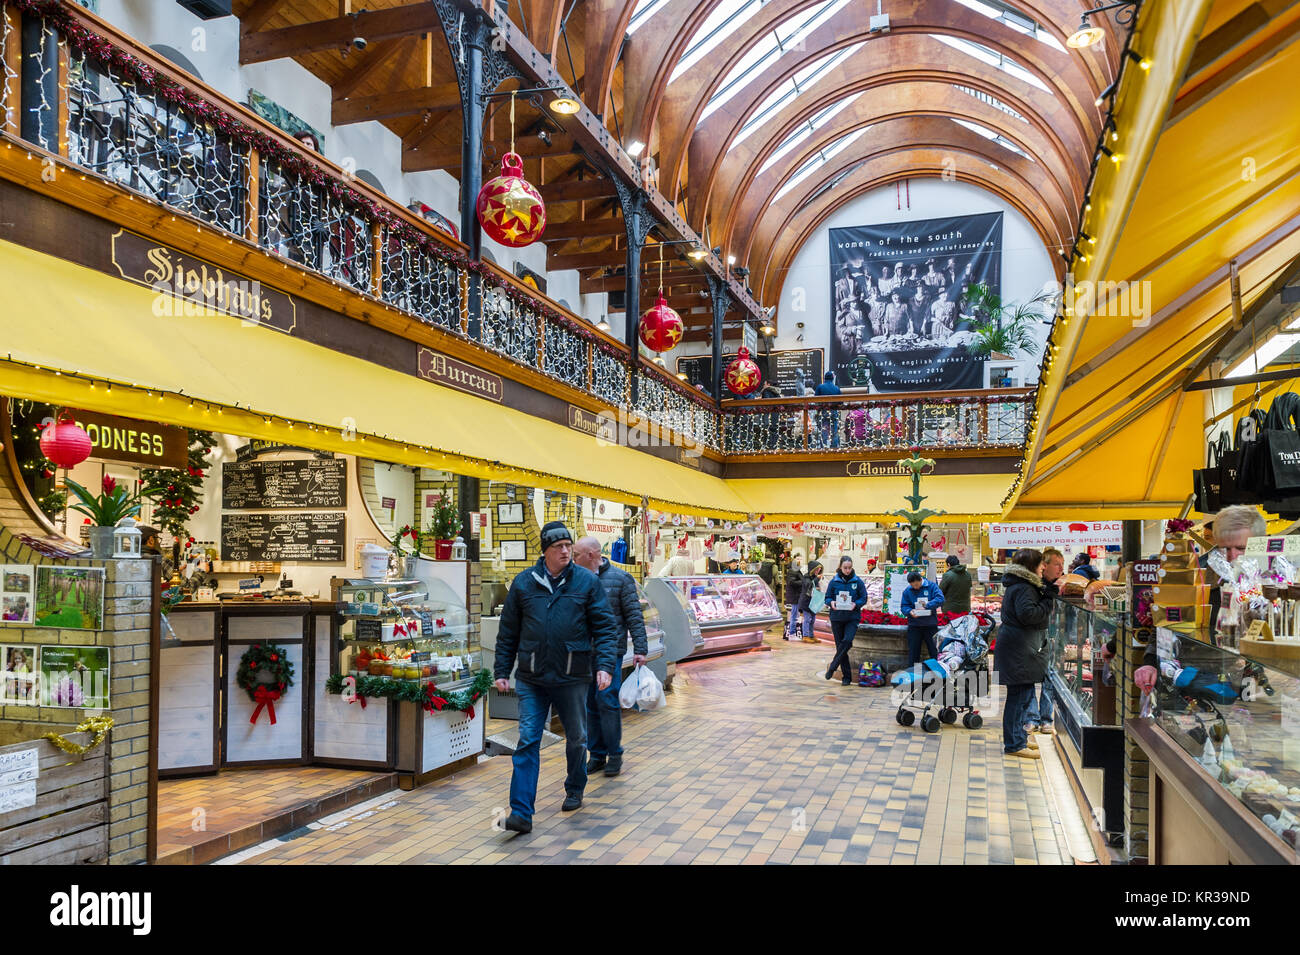 English Market, Cork, Ireland in the run up to Christmas with lots of Christmas shoppers and Christmas decorations. - Stock Image